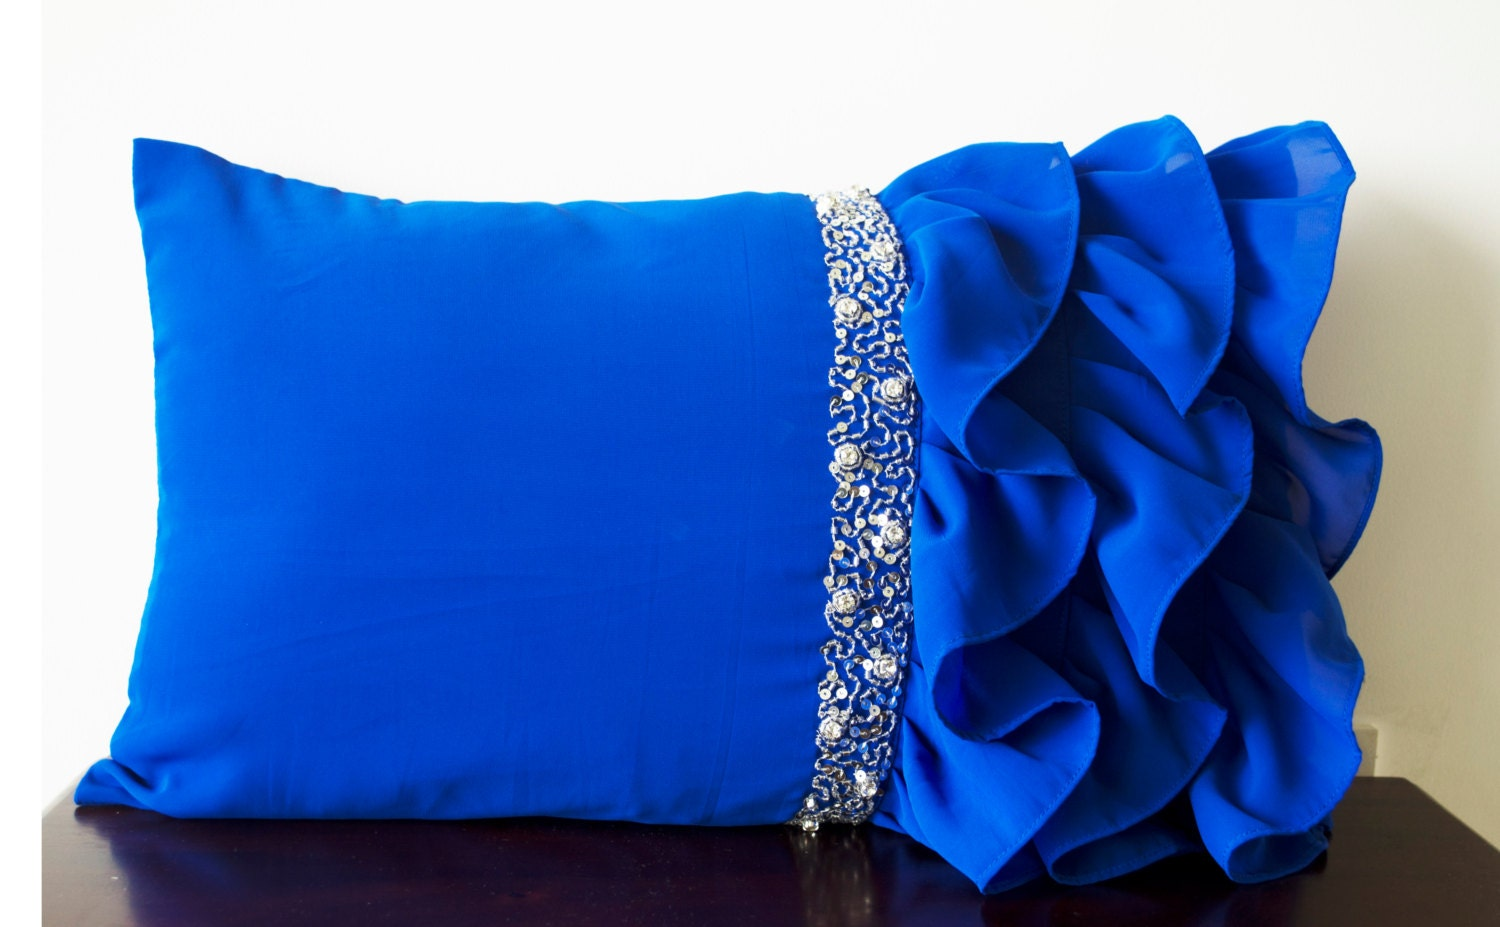 Royal Blue ruffled throw pillows Ruffle pillows 12x20 Blue